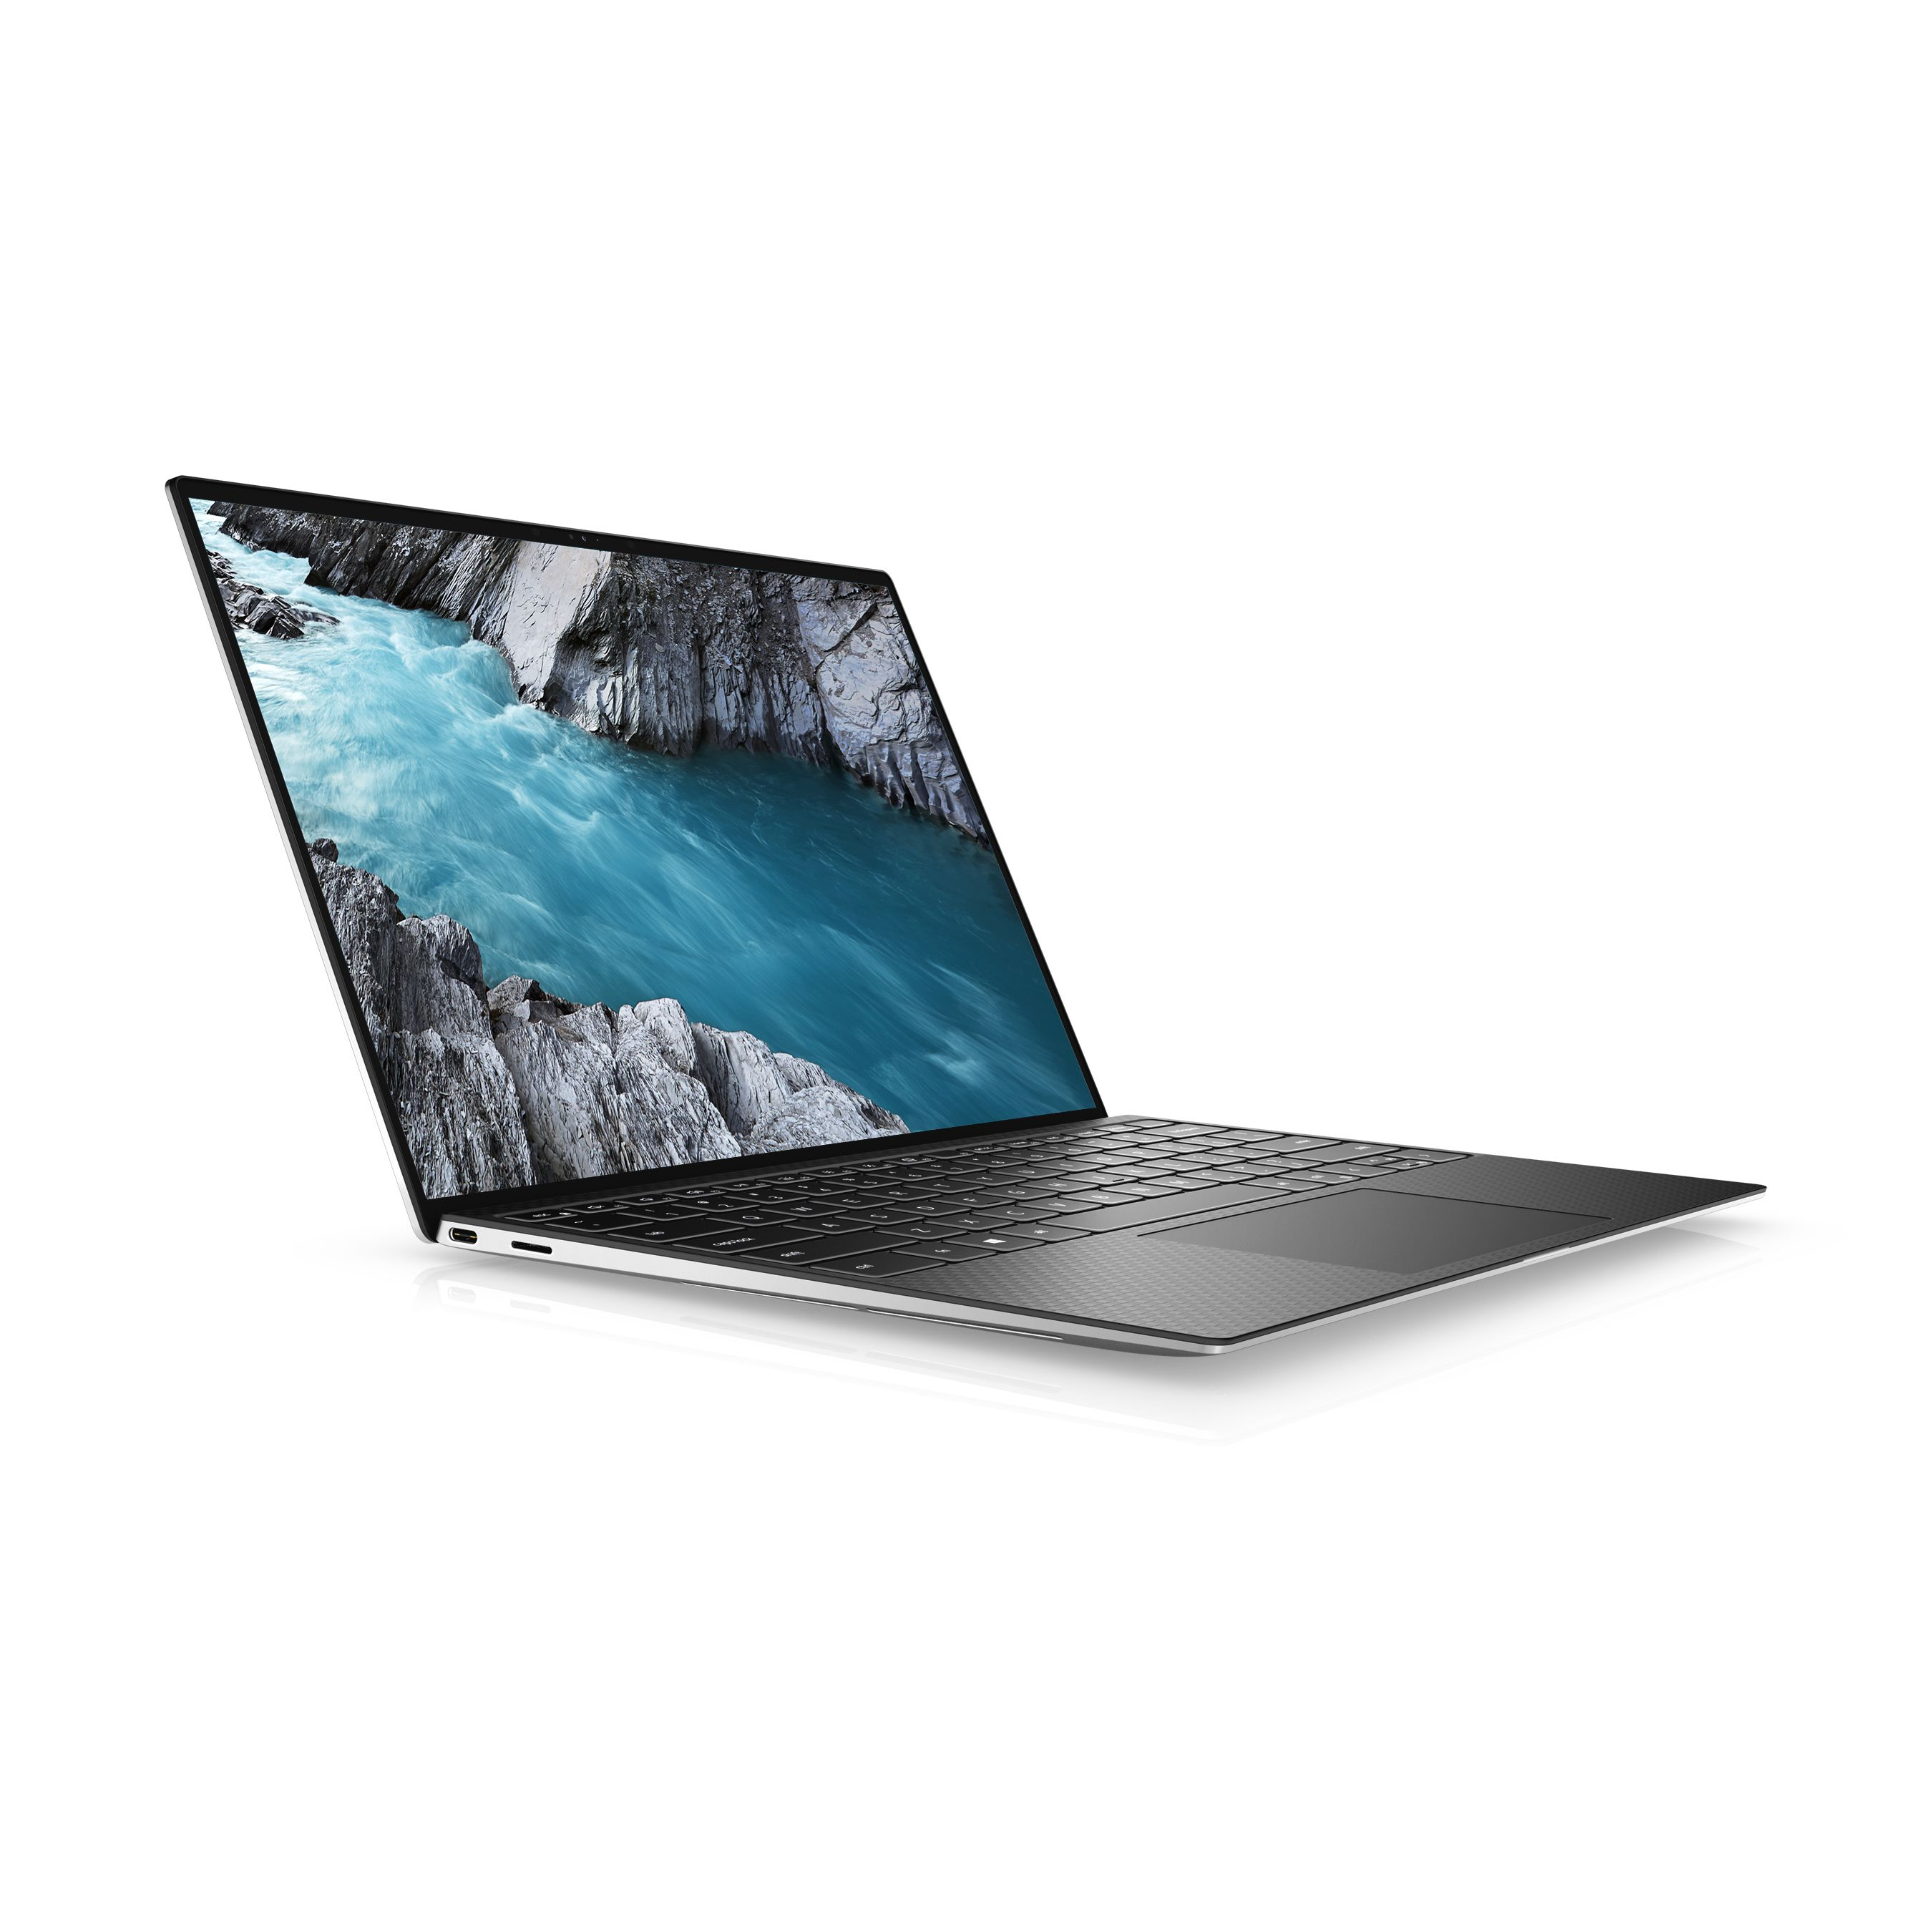 Dell XPS 13 9310 i7 1185G7 16GB RAM 512GB SSD FHD Notebook